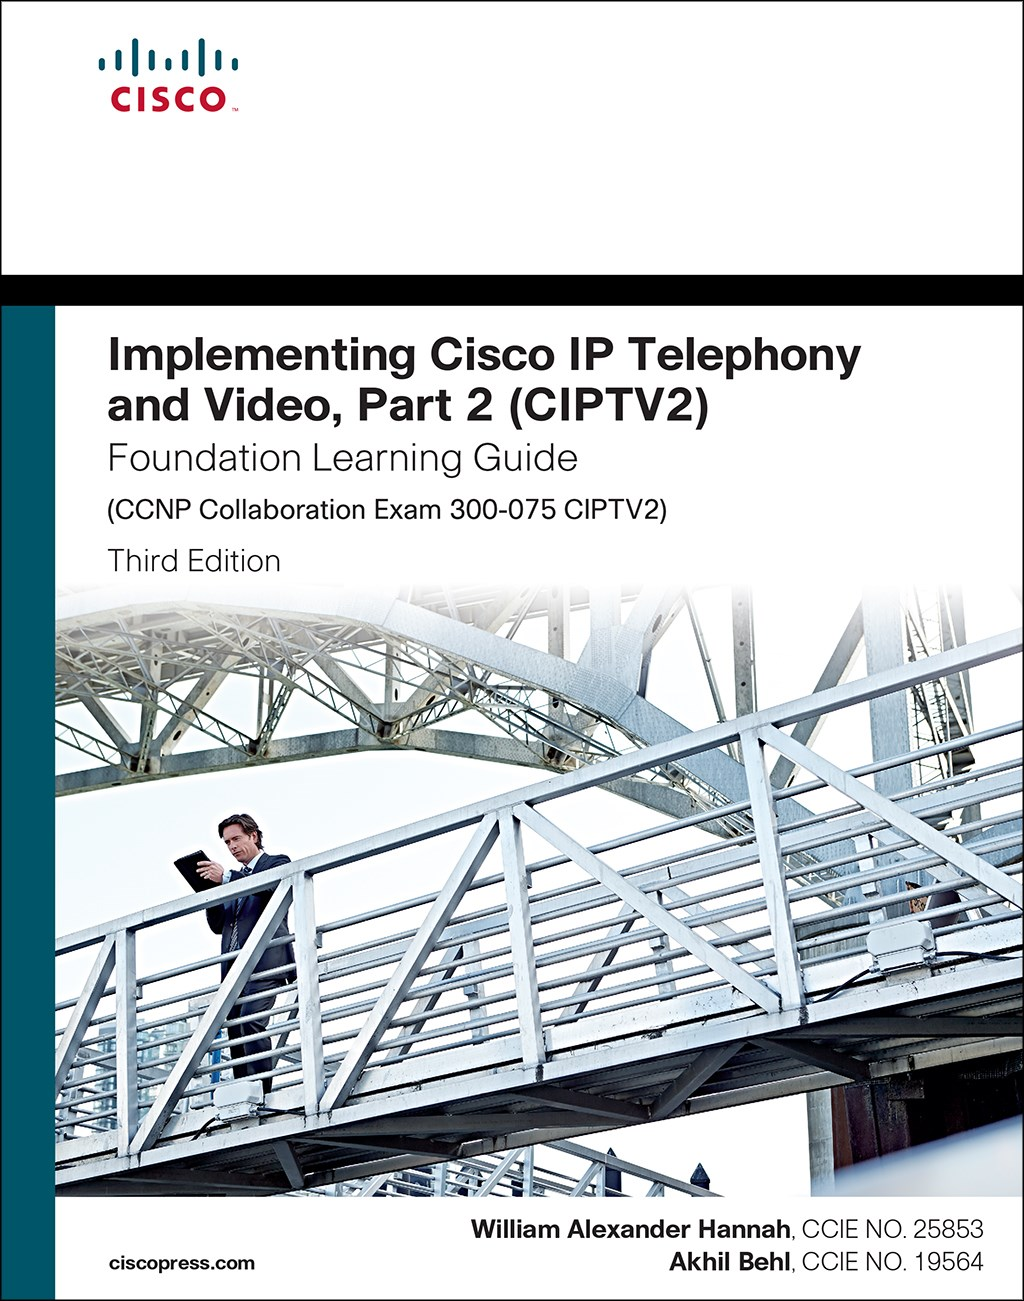 Implementing Cisco IP Telephony and Video, Part 2 (CIPTV2) Foundation Learning Guide (CCNP Collaboration Exam 300-075 CIPTV2), 3rd Edition